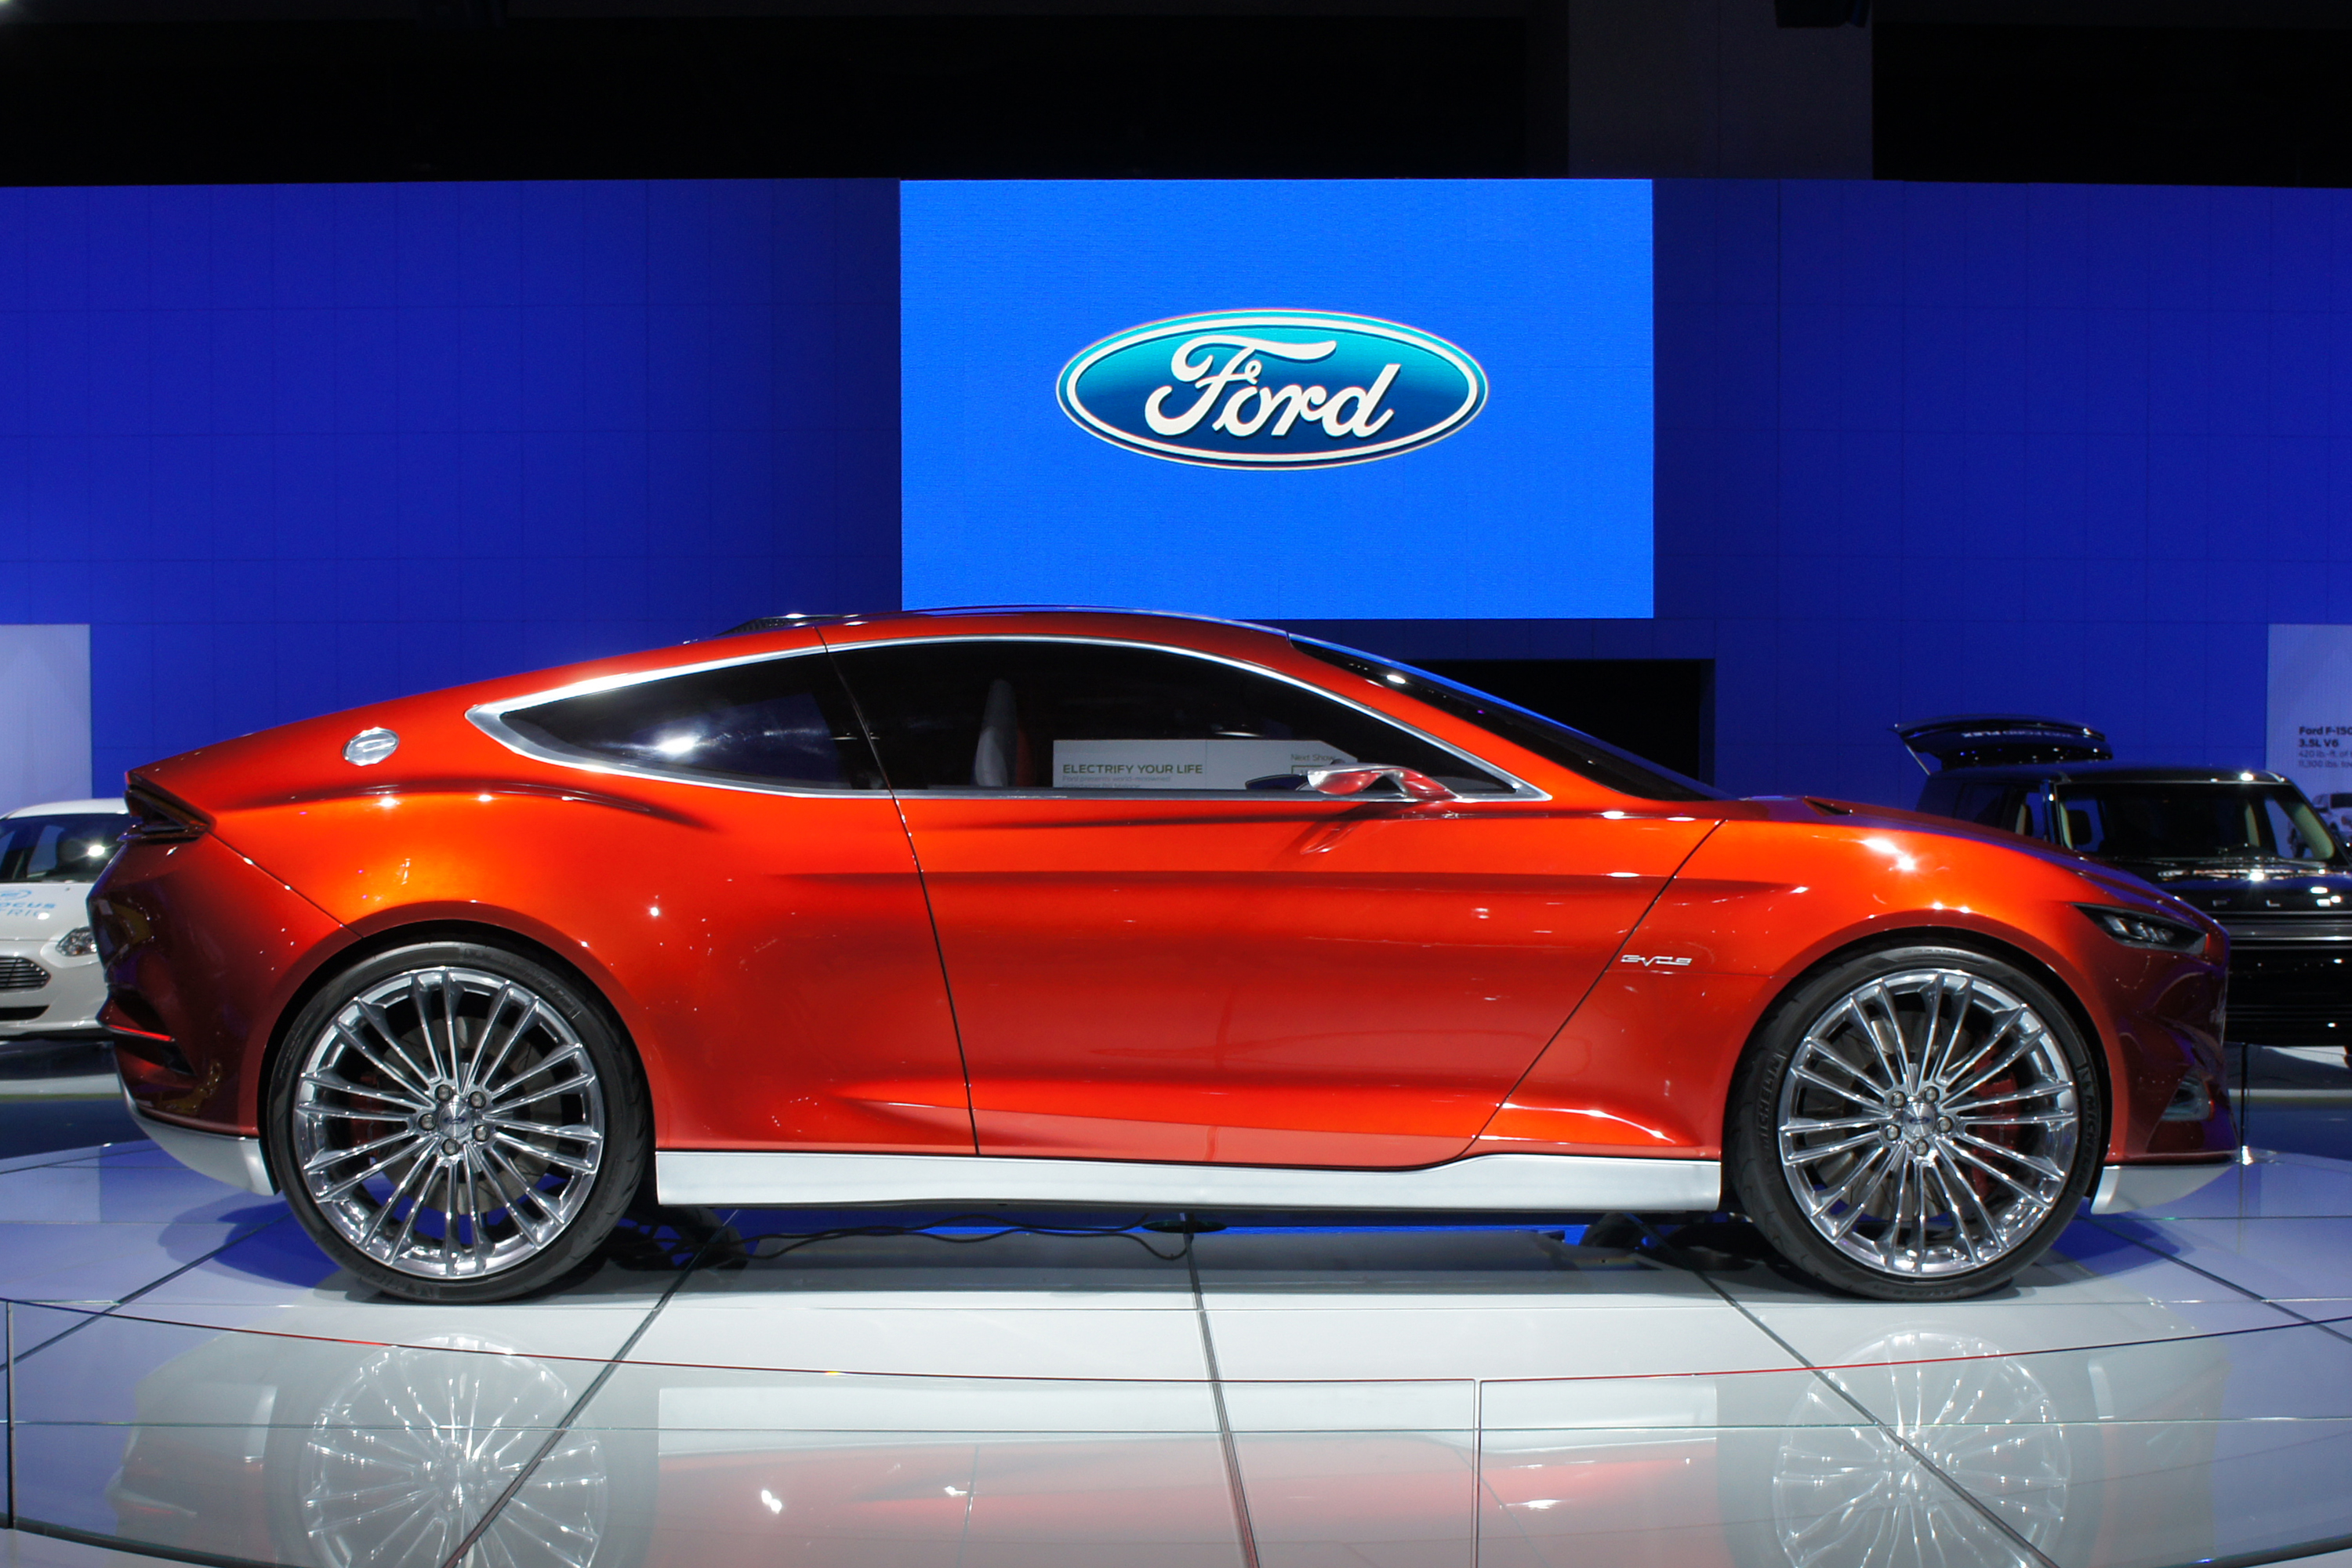 wallpaper electric car file ford evos plug in hybrid was. Black Bedroom Furniture Sets. Home Design Ideas